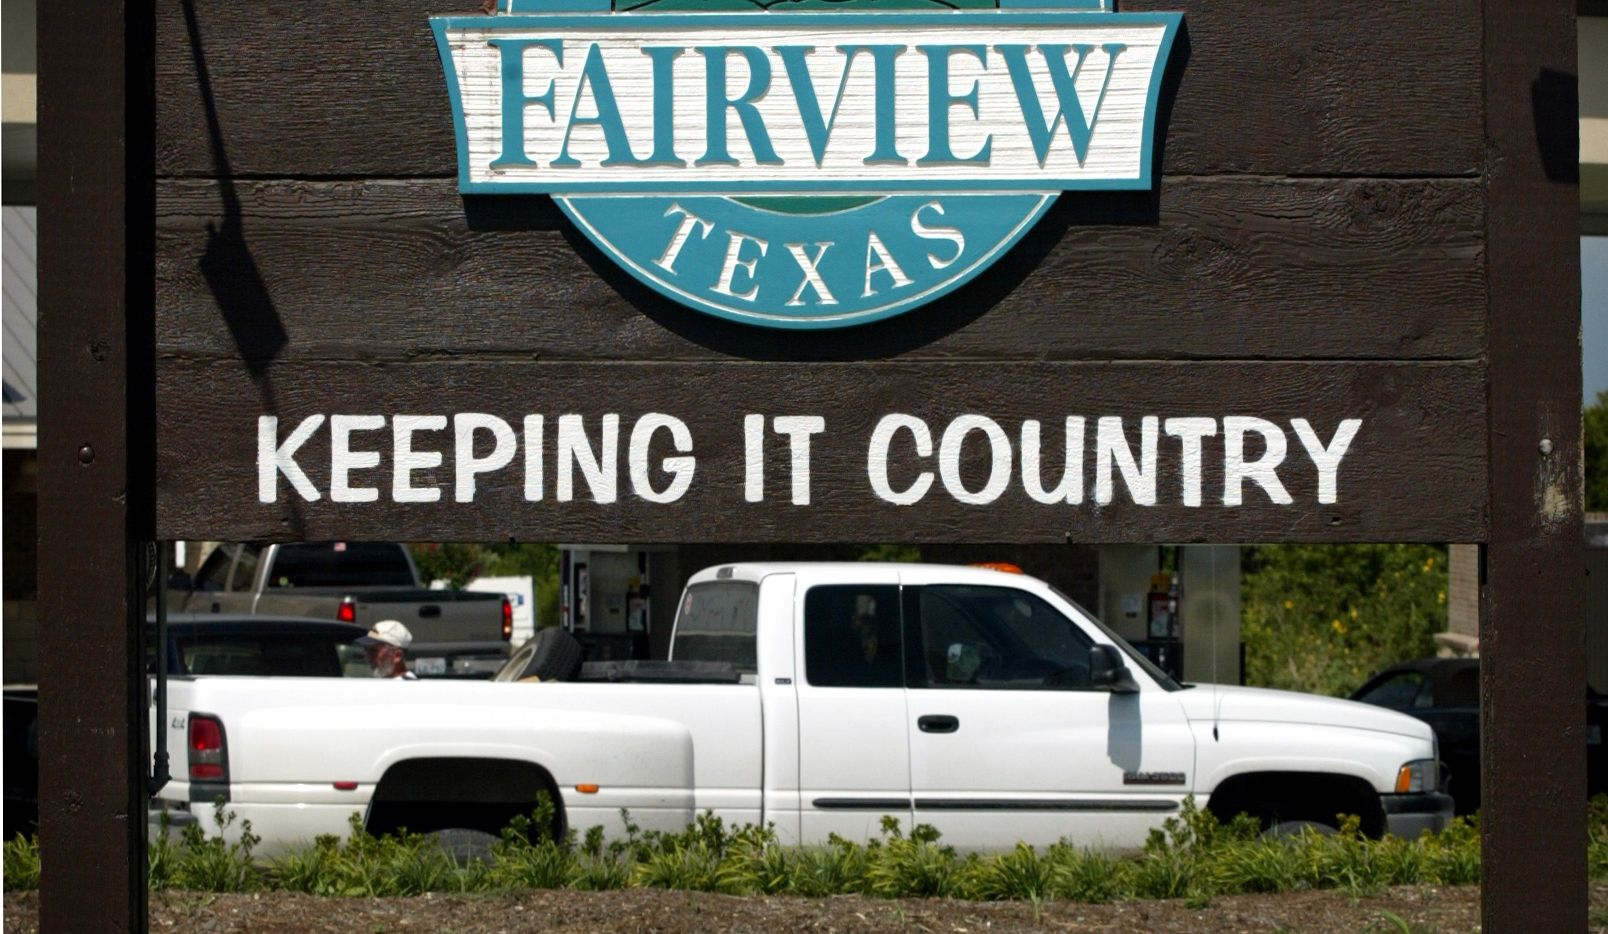 The Collin County town of Fairview used to be known as a country village but is now seeing major development.